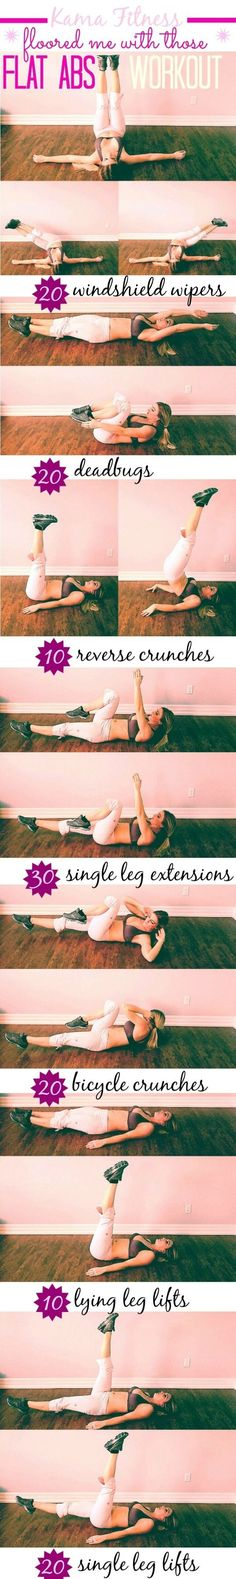 ❤️Floored Me With Those Flat Abs Workout! Awesome!❤️ #Health #Fitness #Trusper #Tip